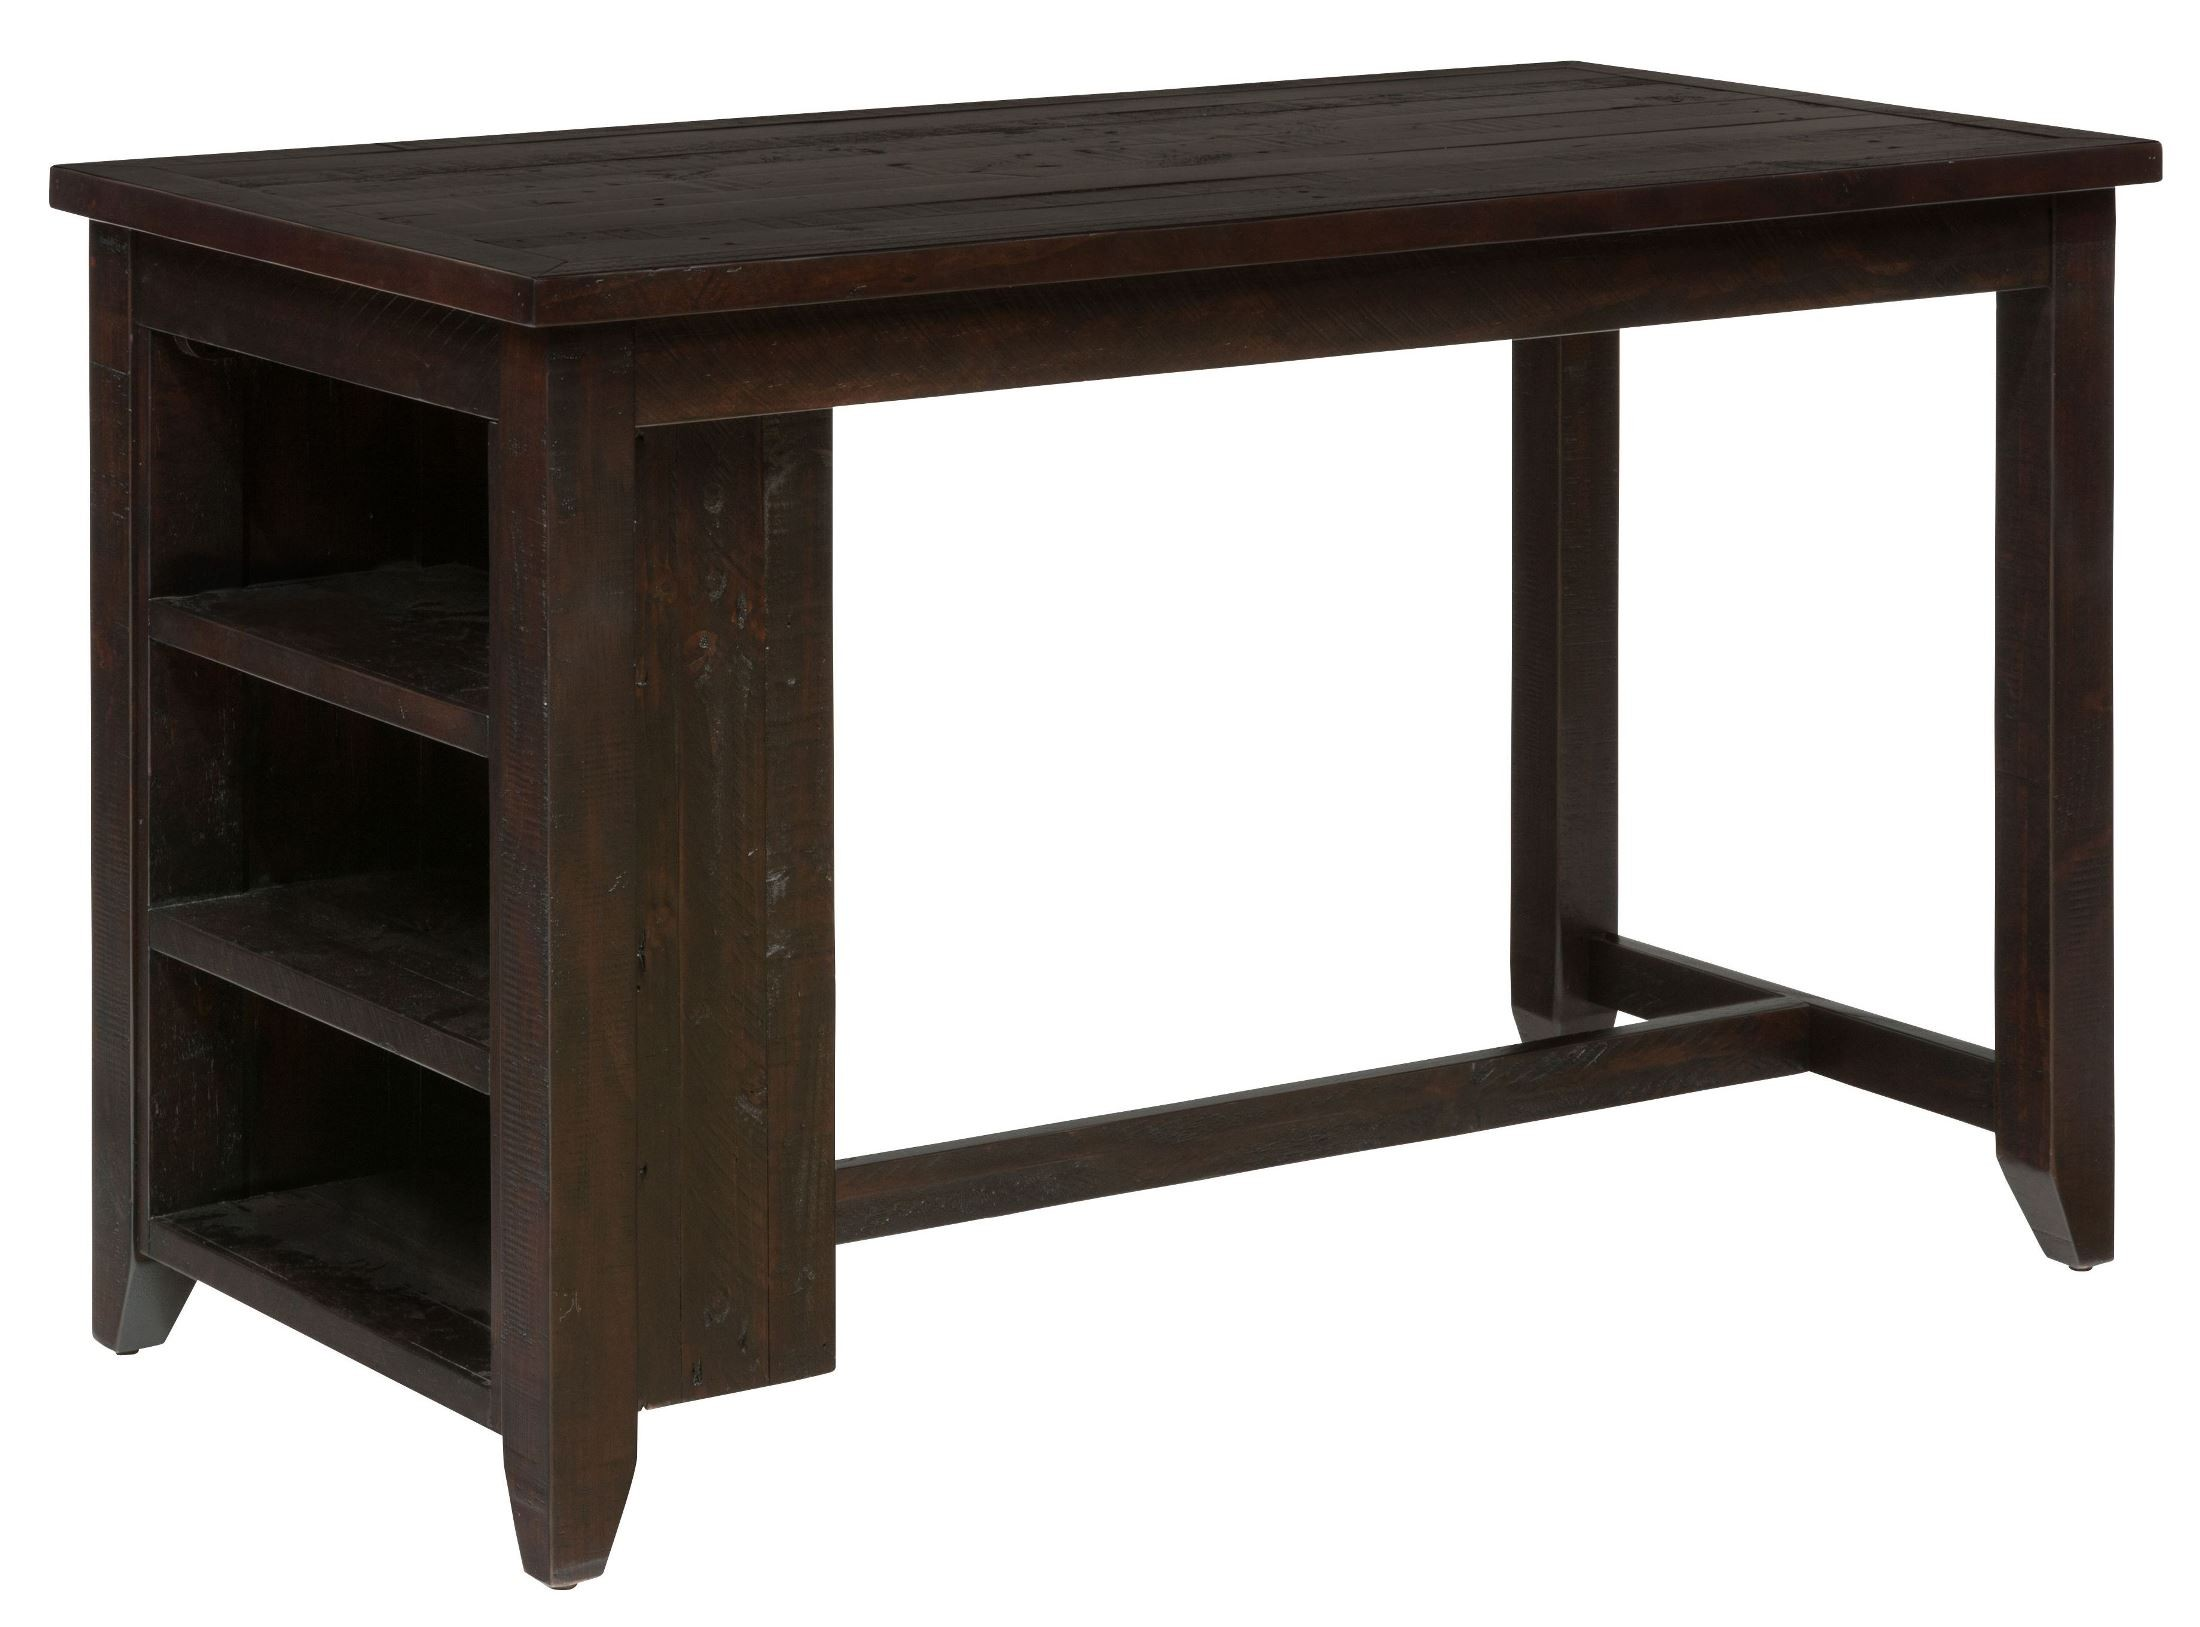 prospect creek dark brown shelf storage counter height dining table from jofran coleman furniture. Black Bedroom Furniture Sets. Home Design Ideas